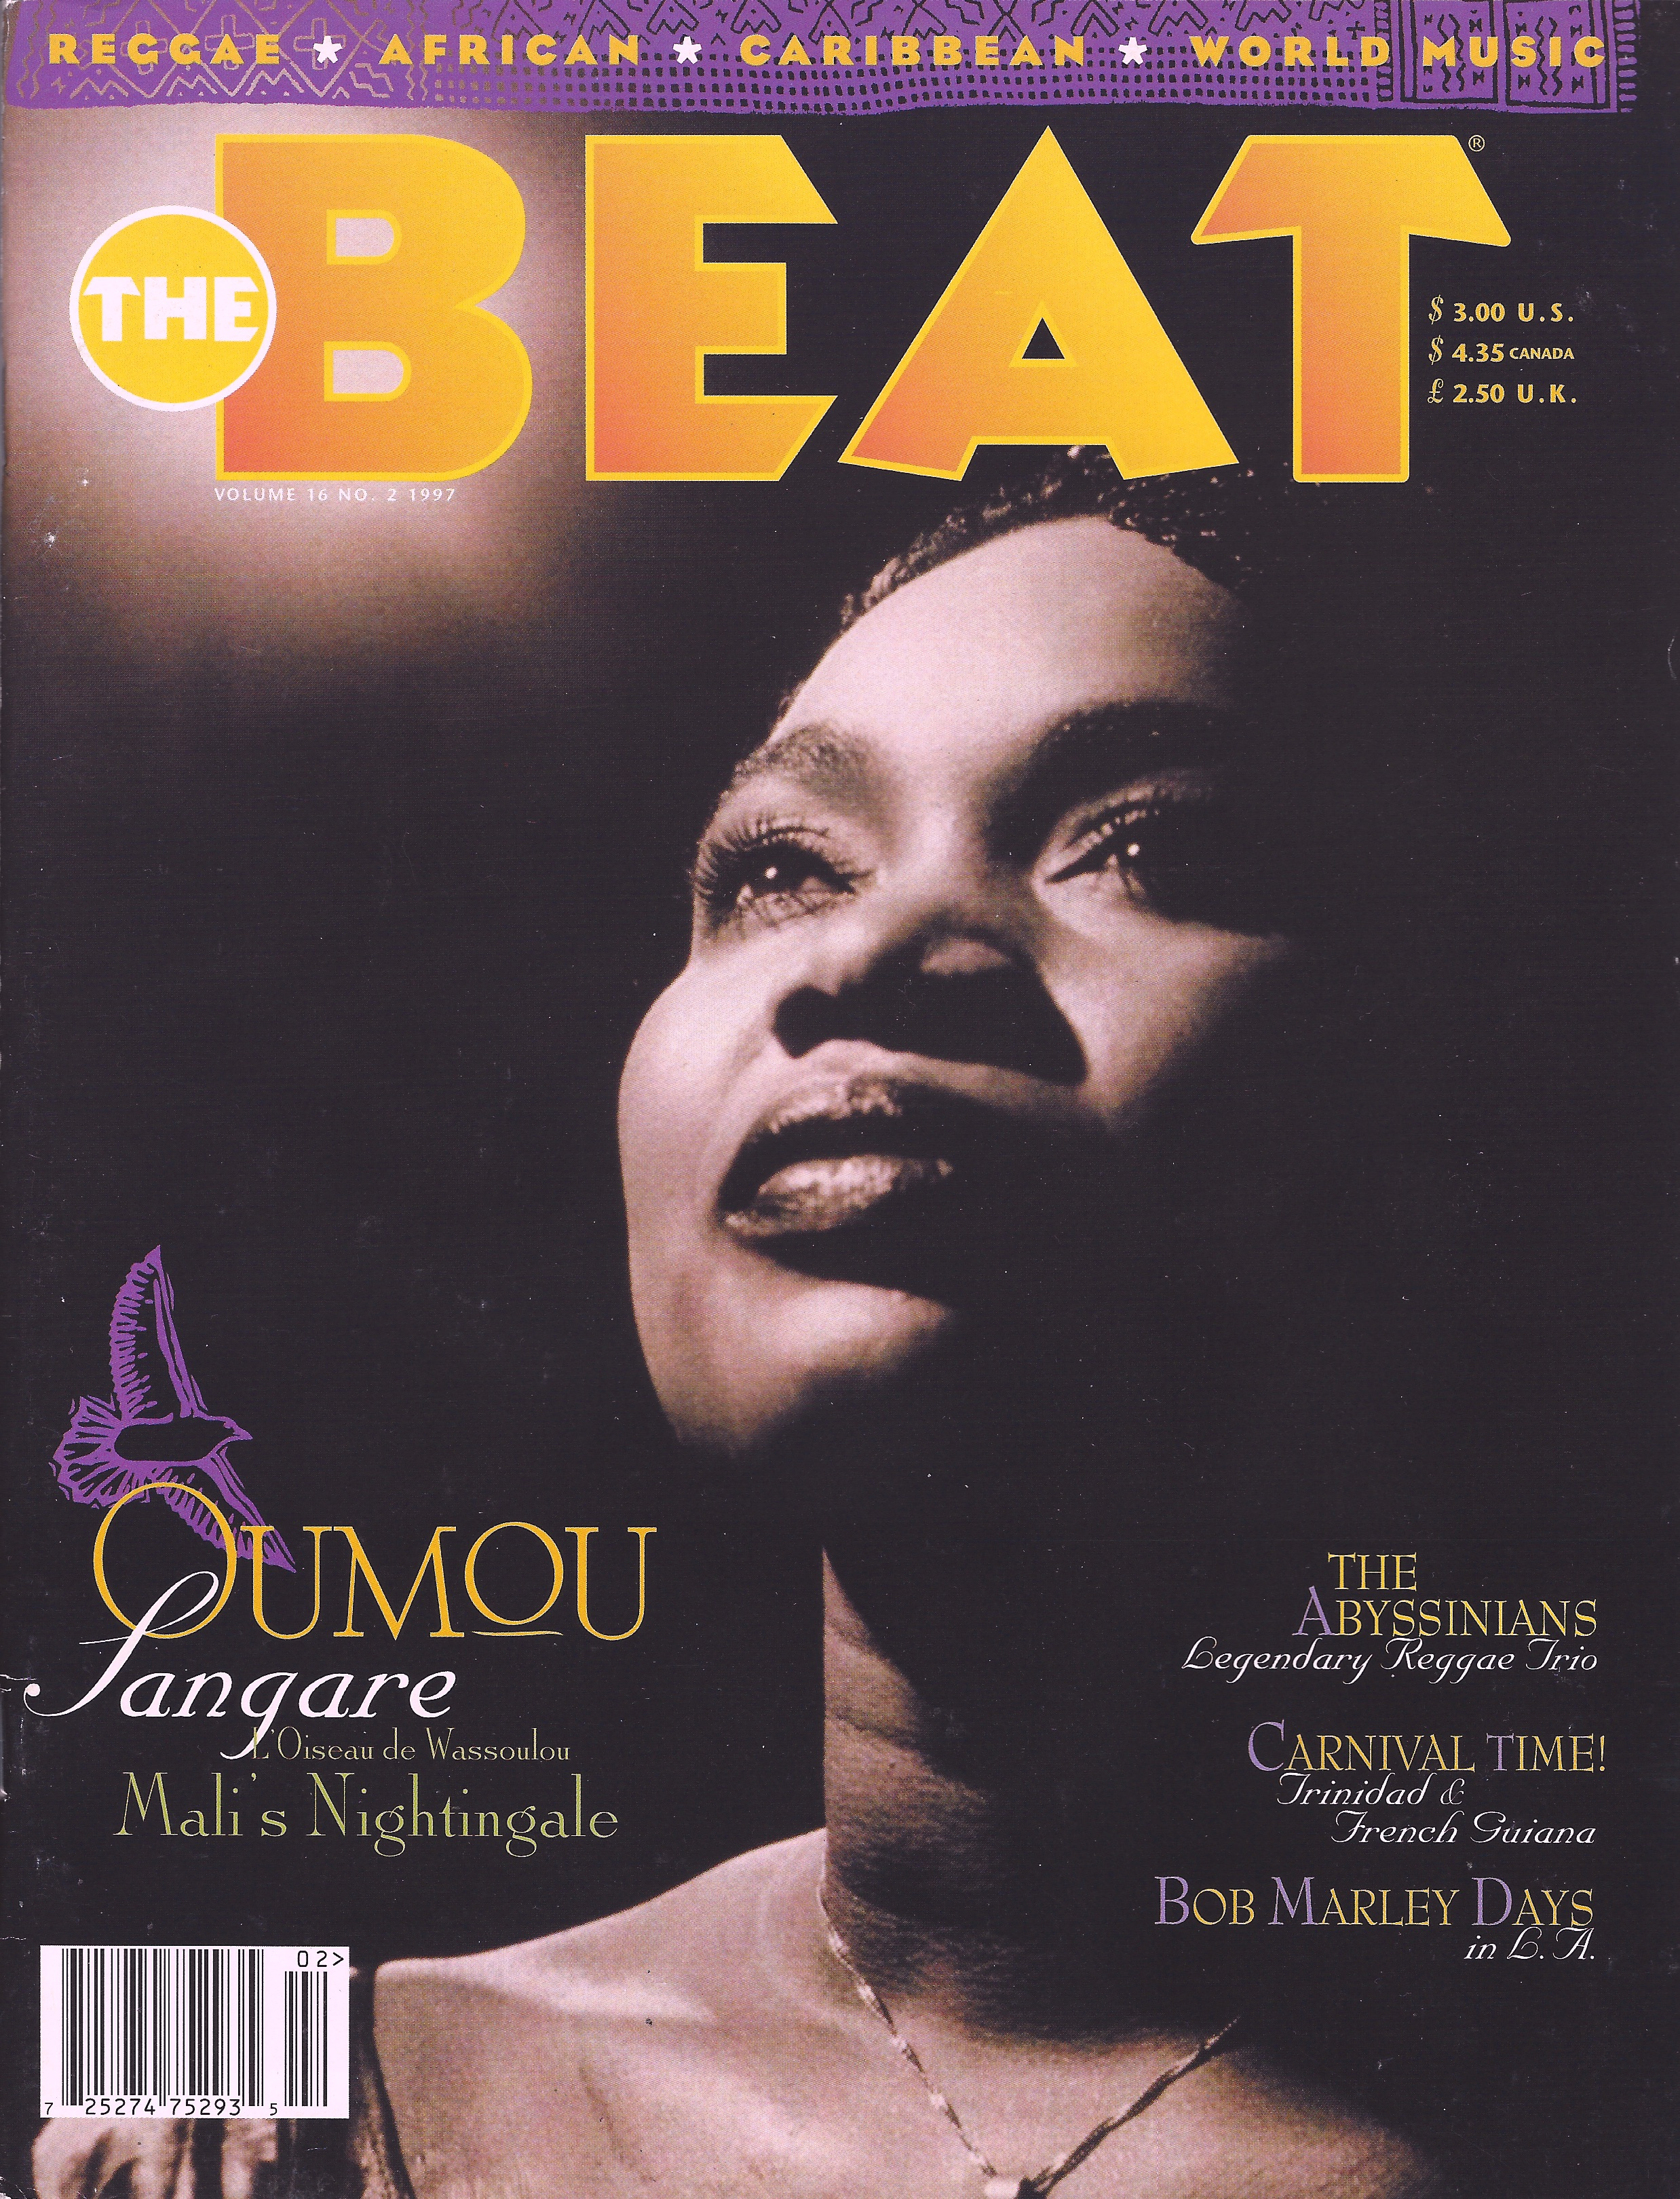 Best of The Beat on Afropop: Oumou Sangare, Mali's Nightingale